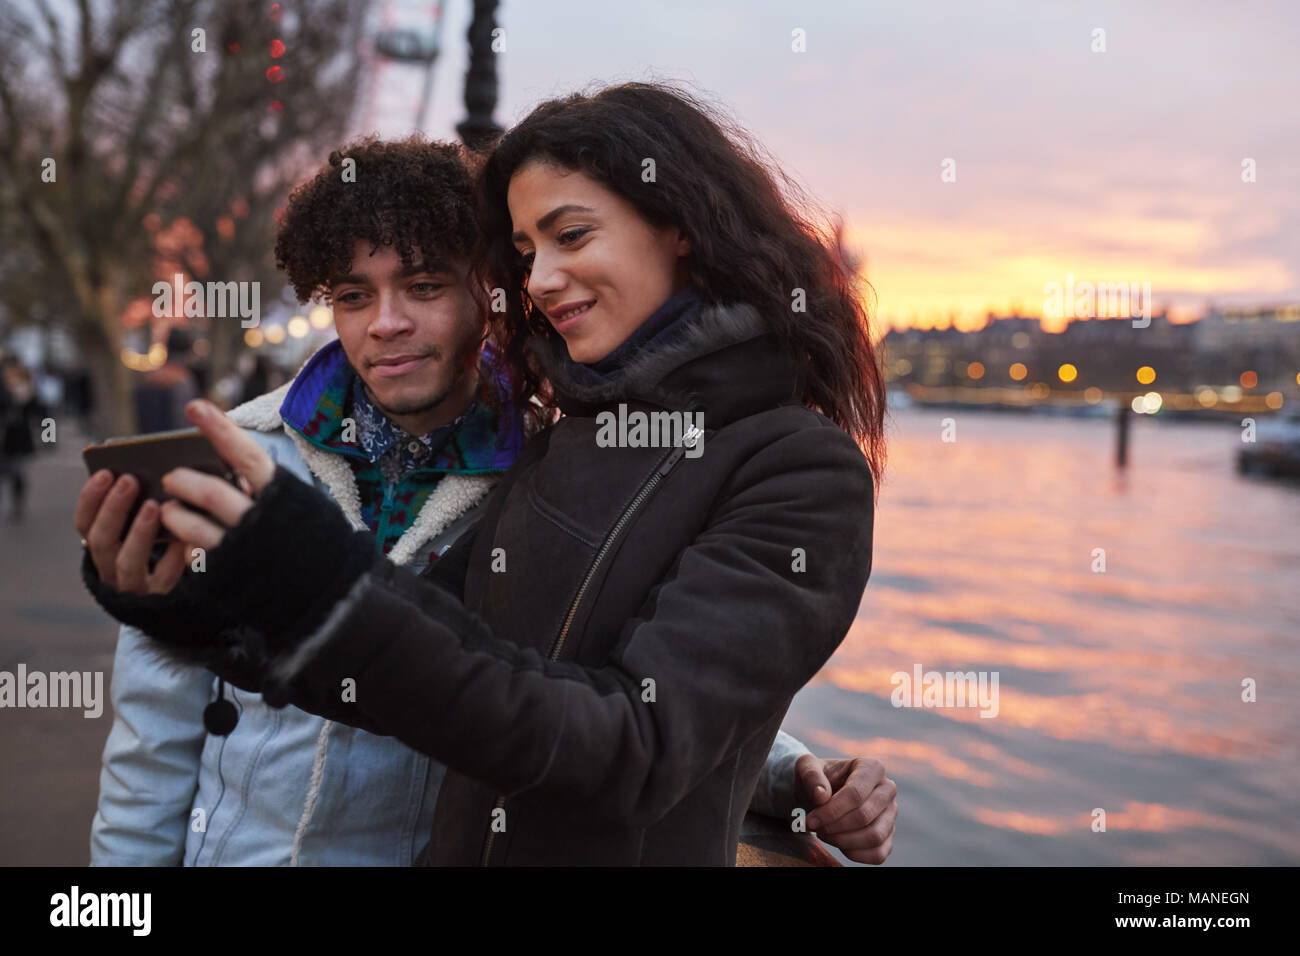 Couple Taking Selfie During Walk Along South Bank In London - Stock Image